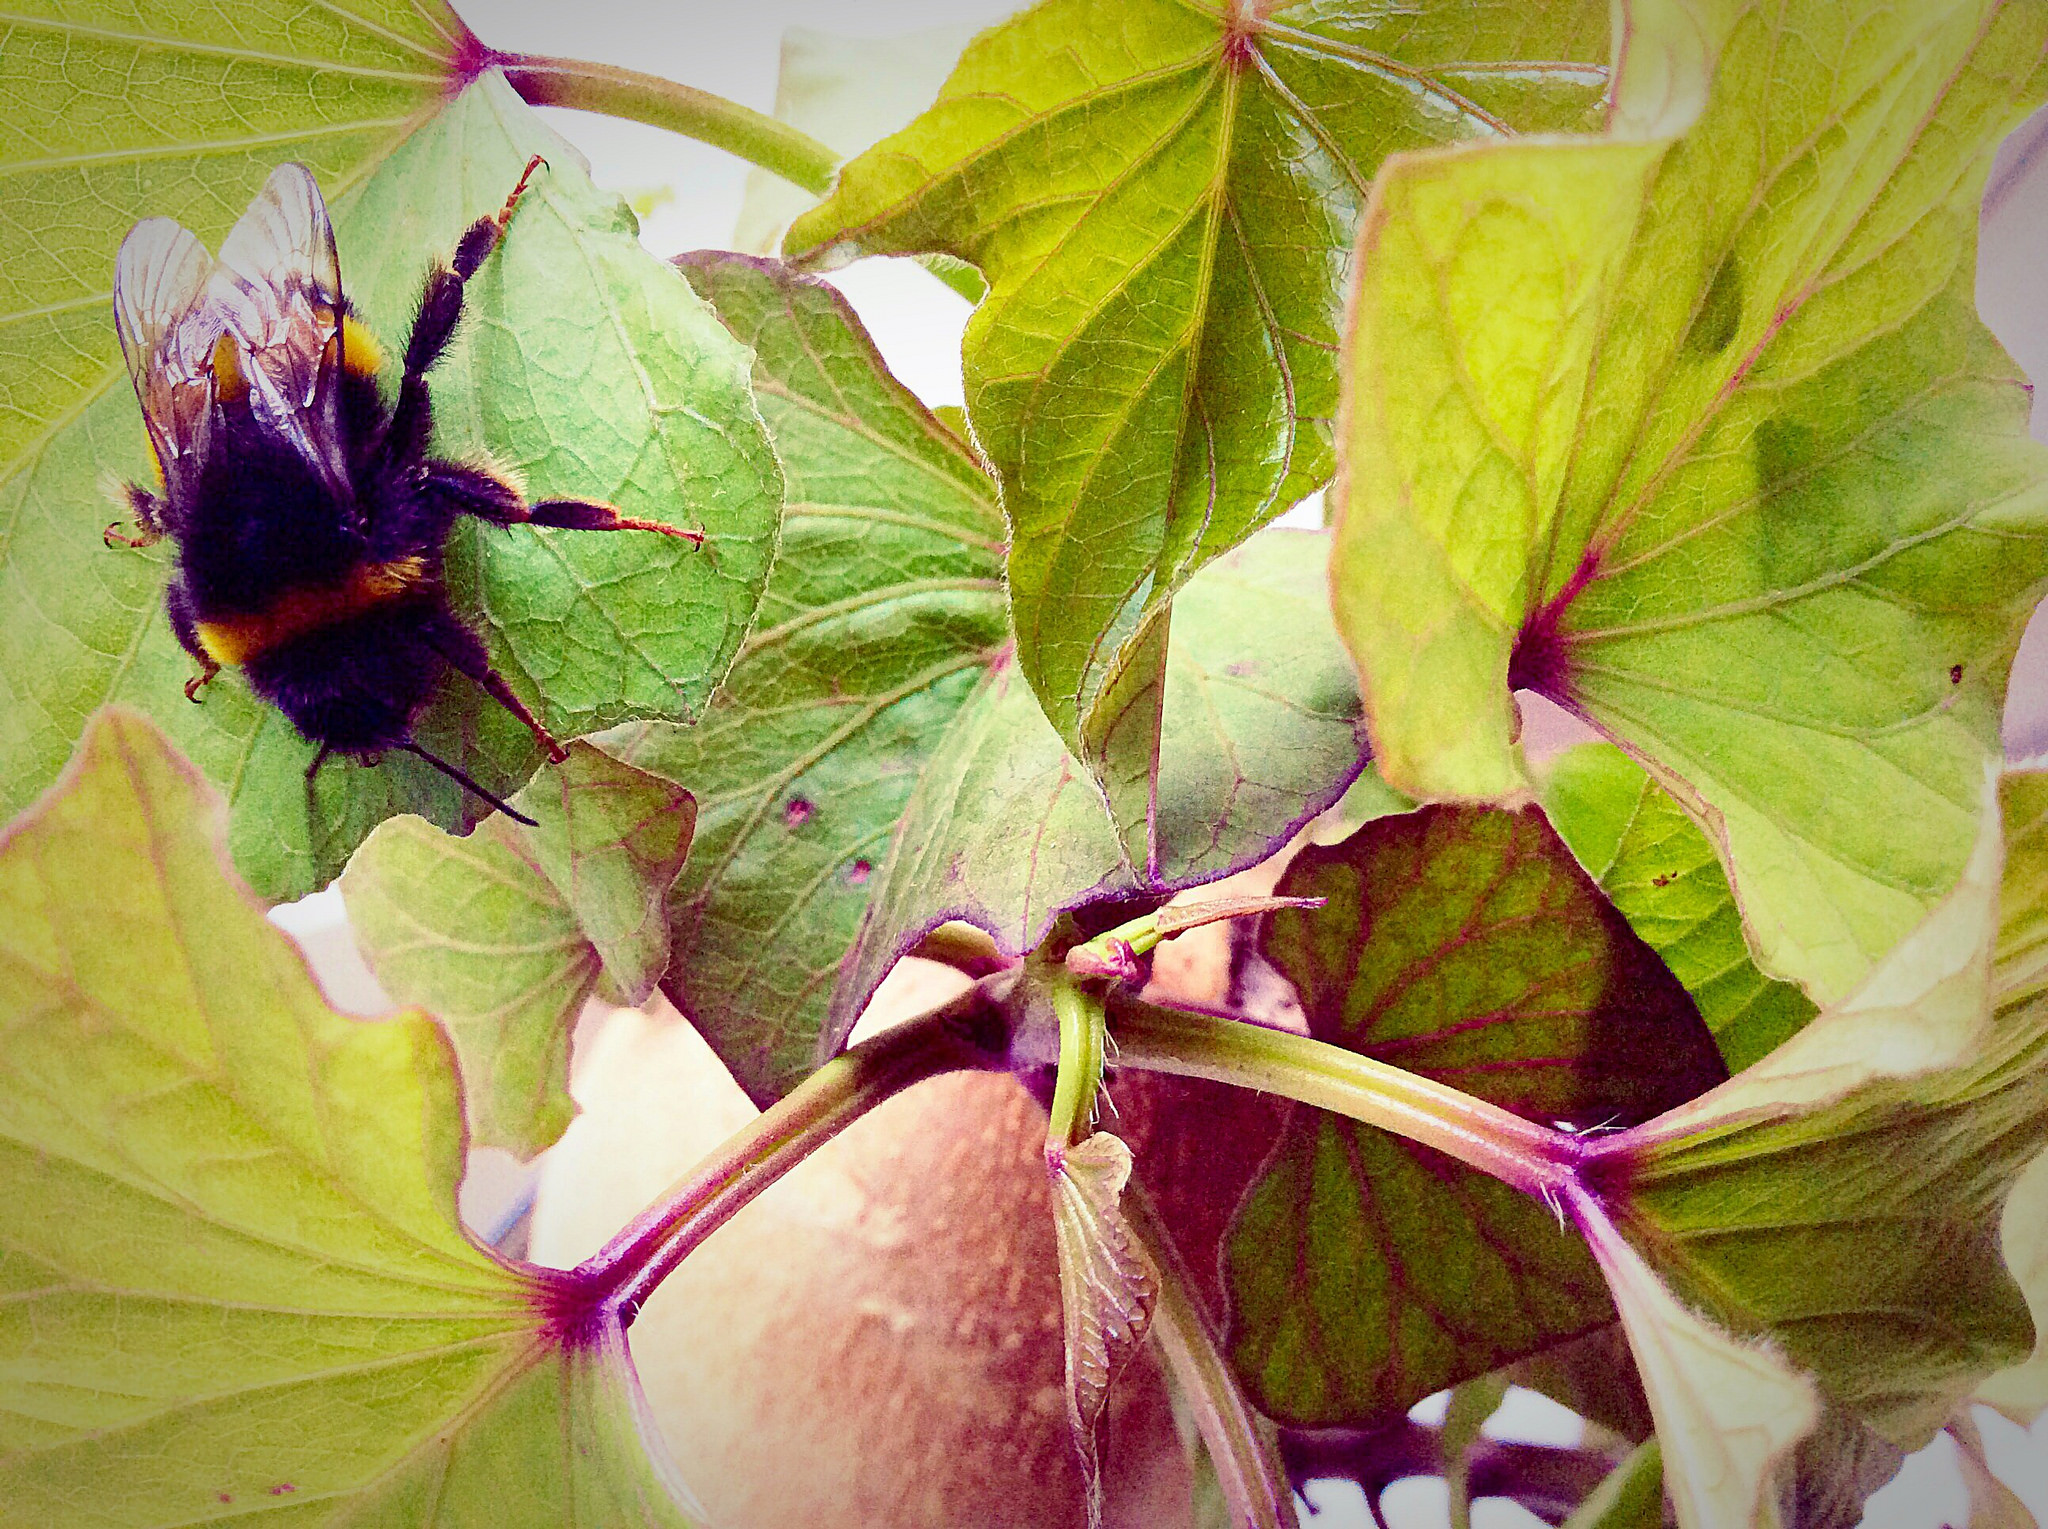 Bee on sweet potato (Ipomea batatas) plant; photo courtesy of Flickr cc/fox-and-fern